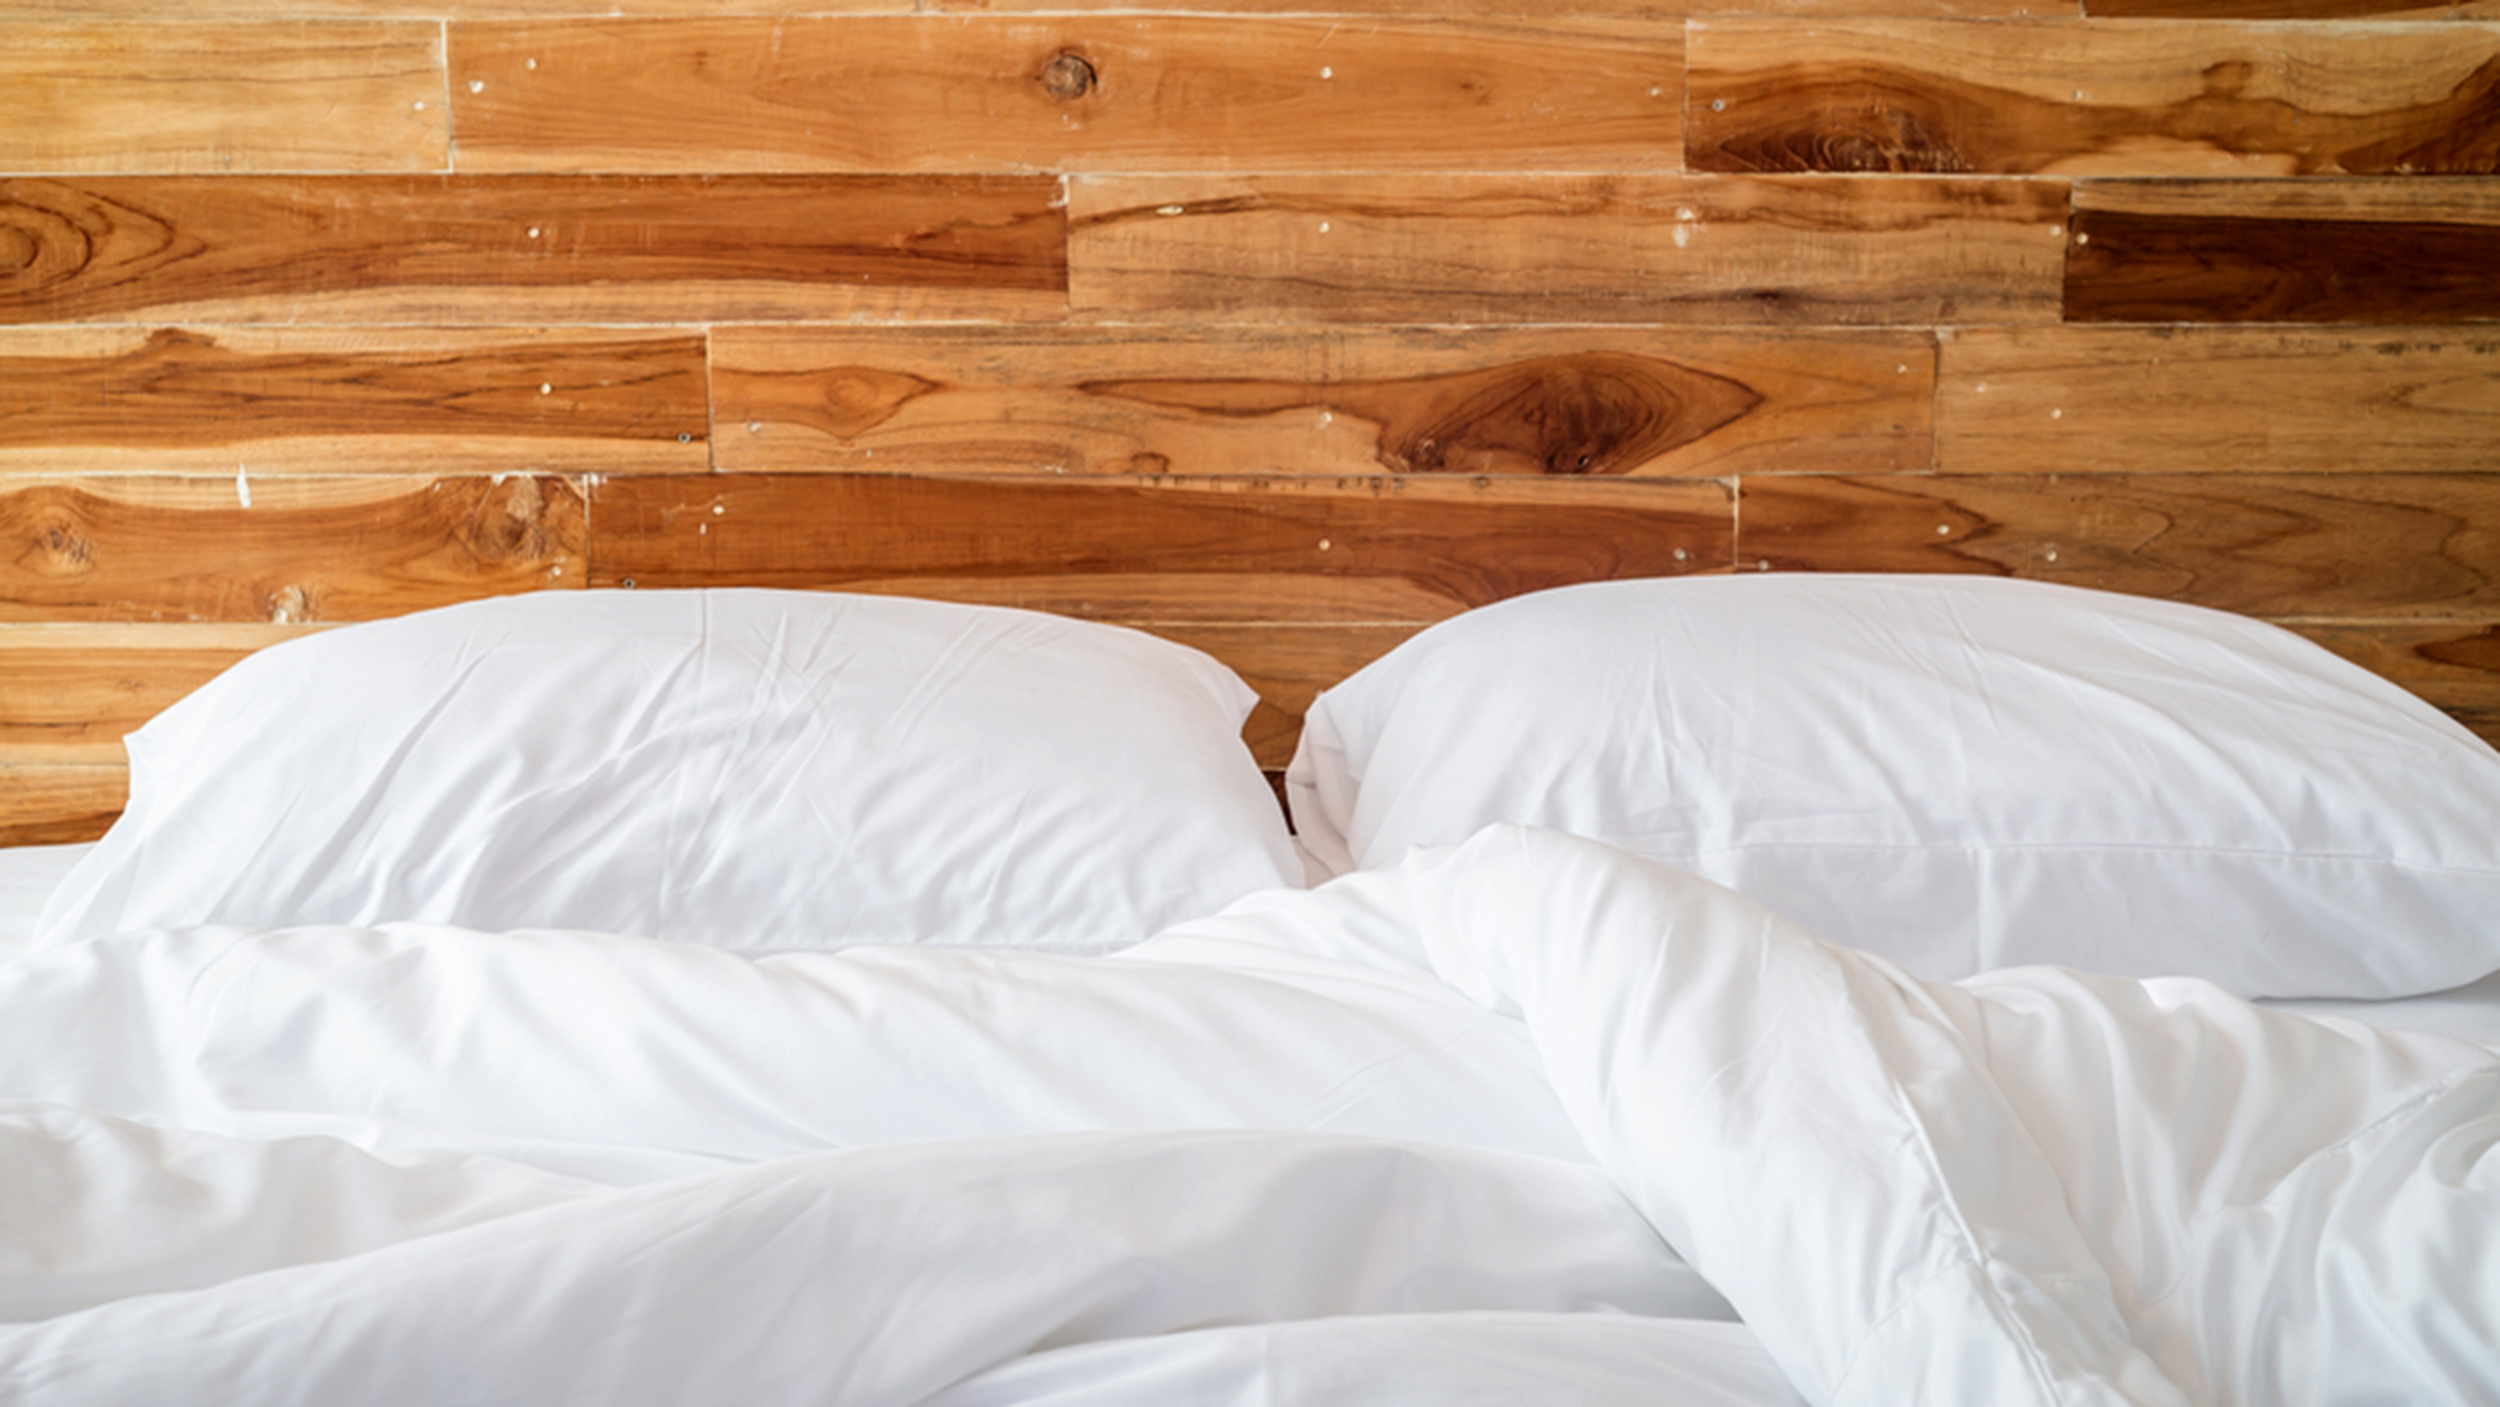 21 Tricks With Google Sheets Pillows Bed Stock Today Tease Bdbddacfecefdce